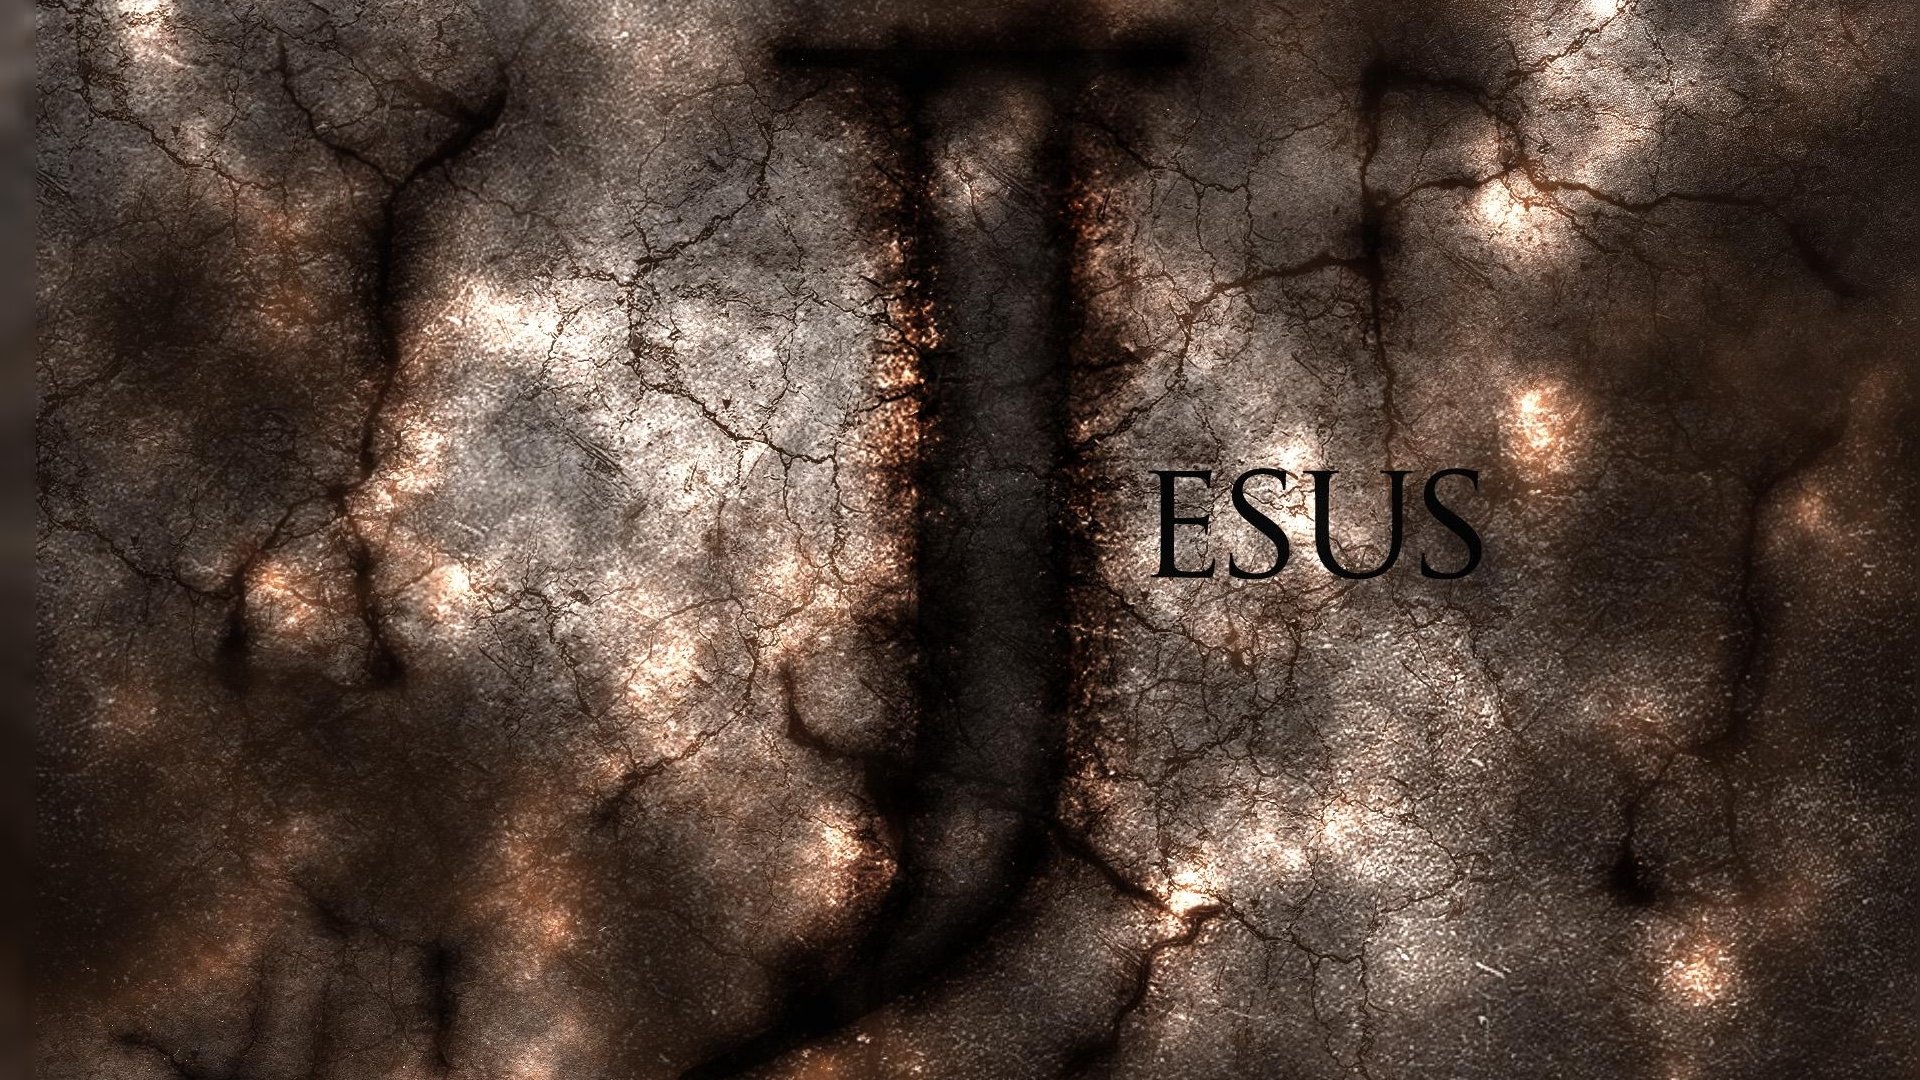 Jesus Wallpaper wallpaper wallpaper hd background desktop 1920x1080